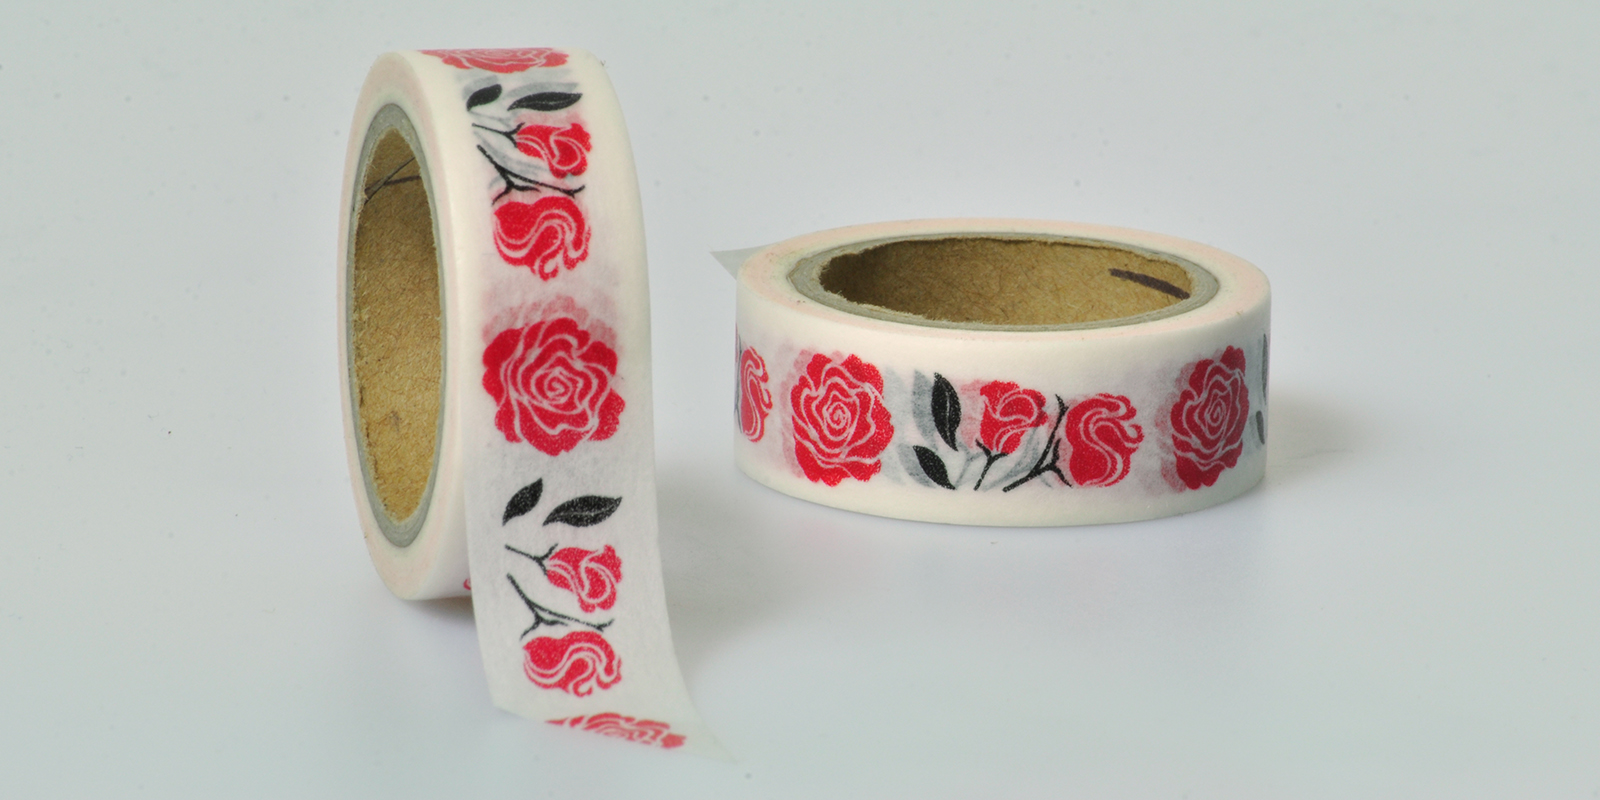 Washi Tape Rose Blumen